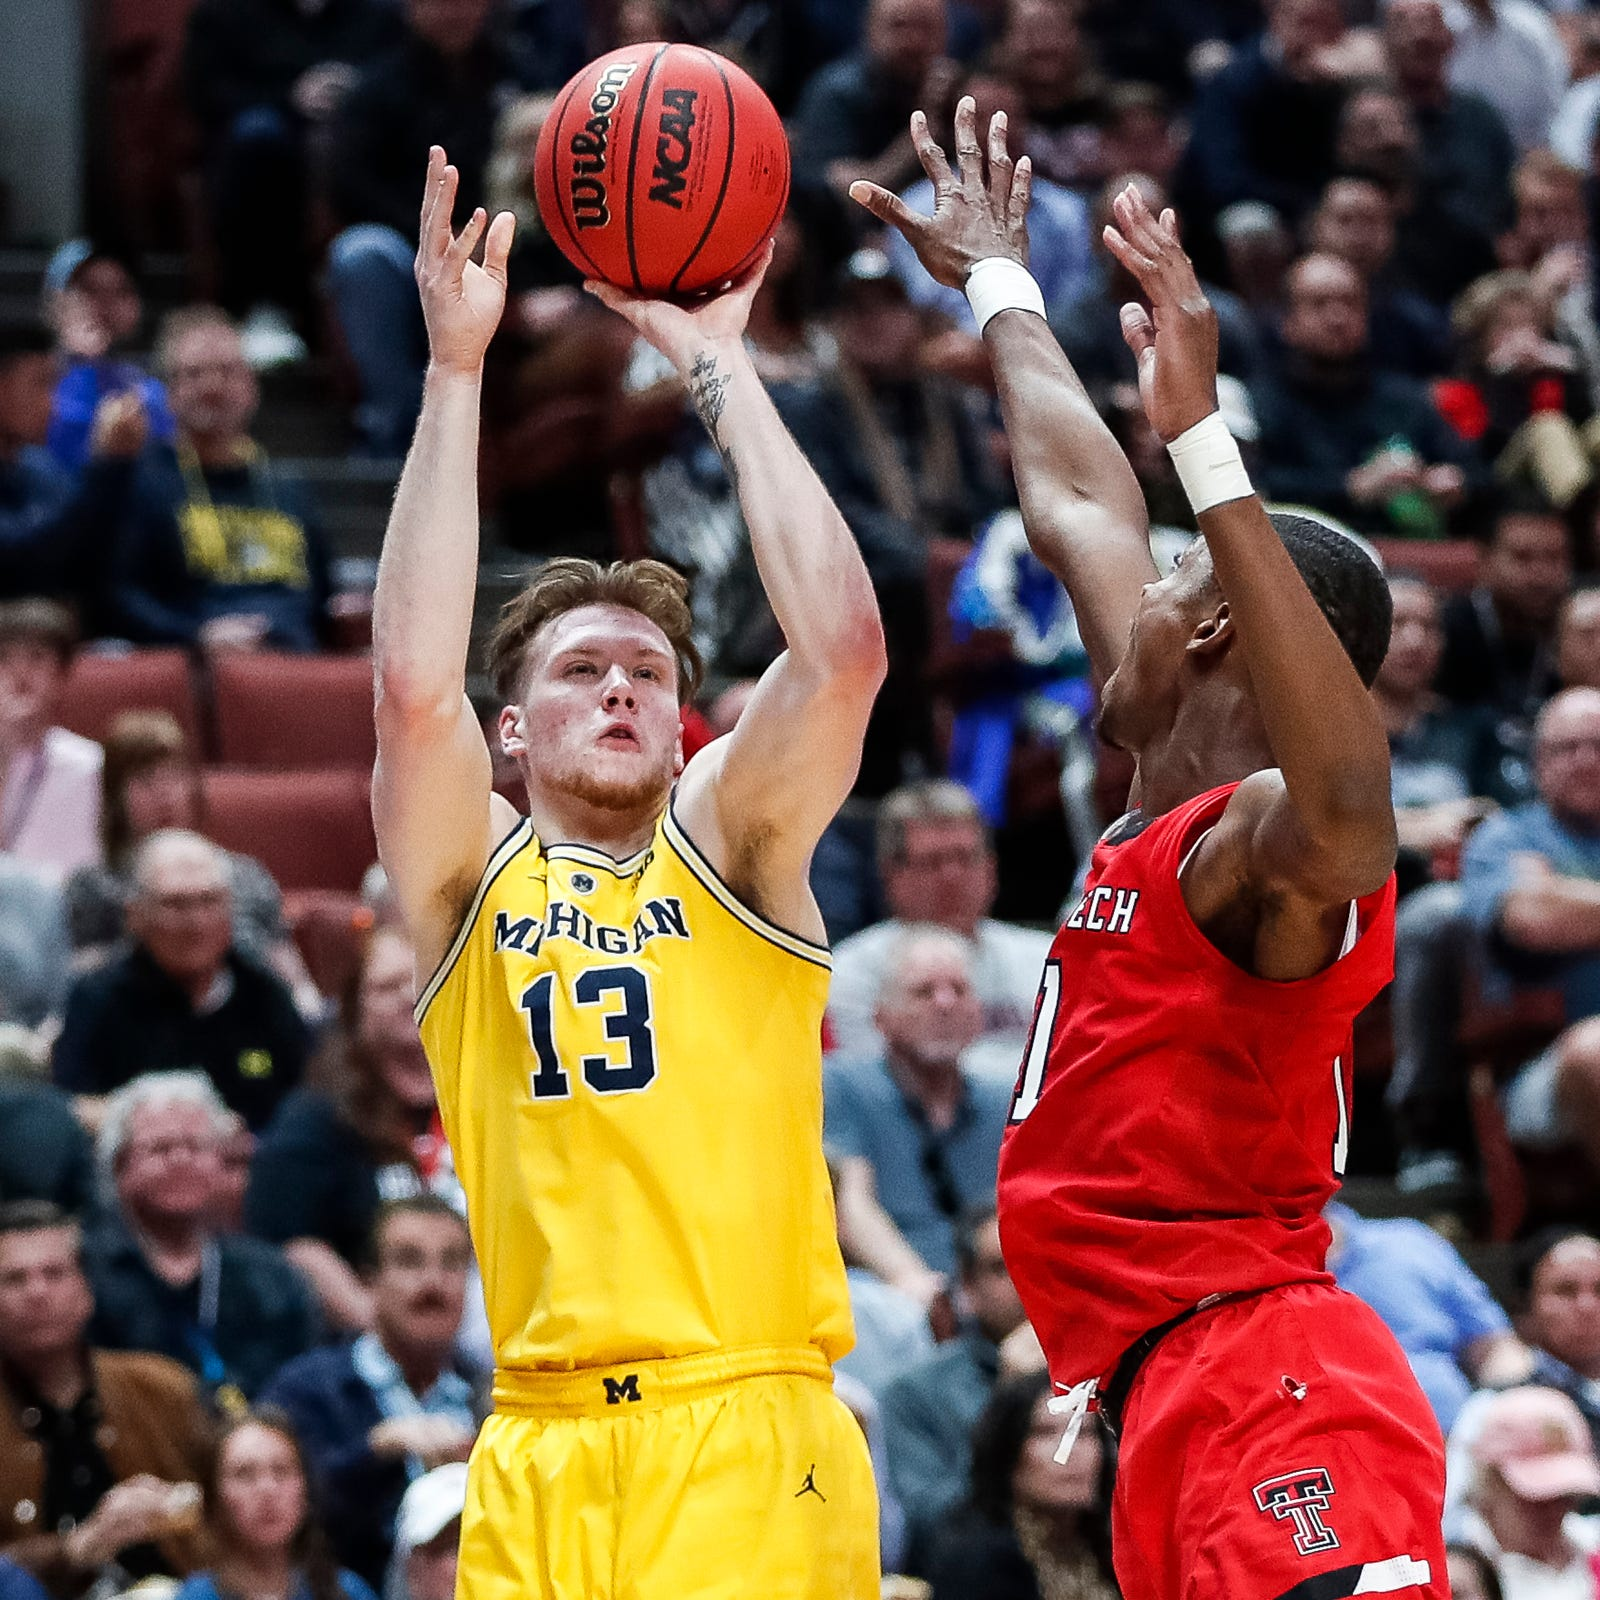 Michigan's Ignas Brazdeikis on NBA-vs.-school decision: 'There's still a lot of time'